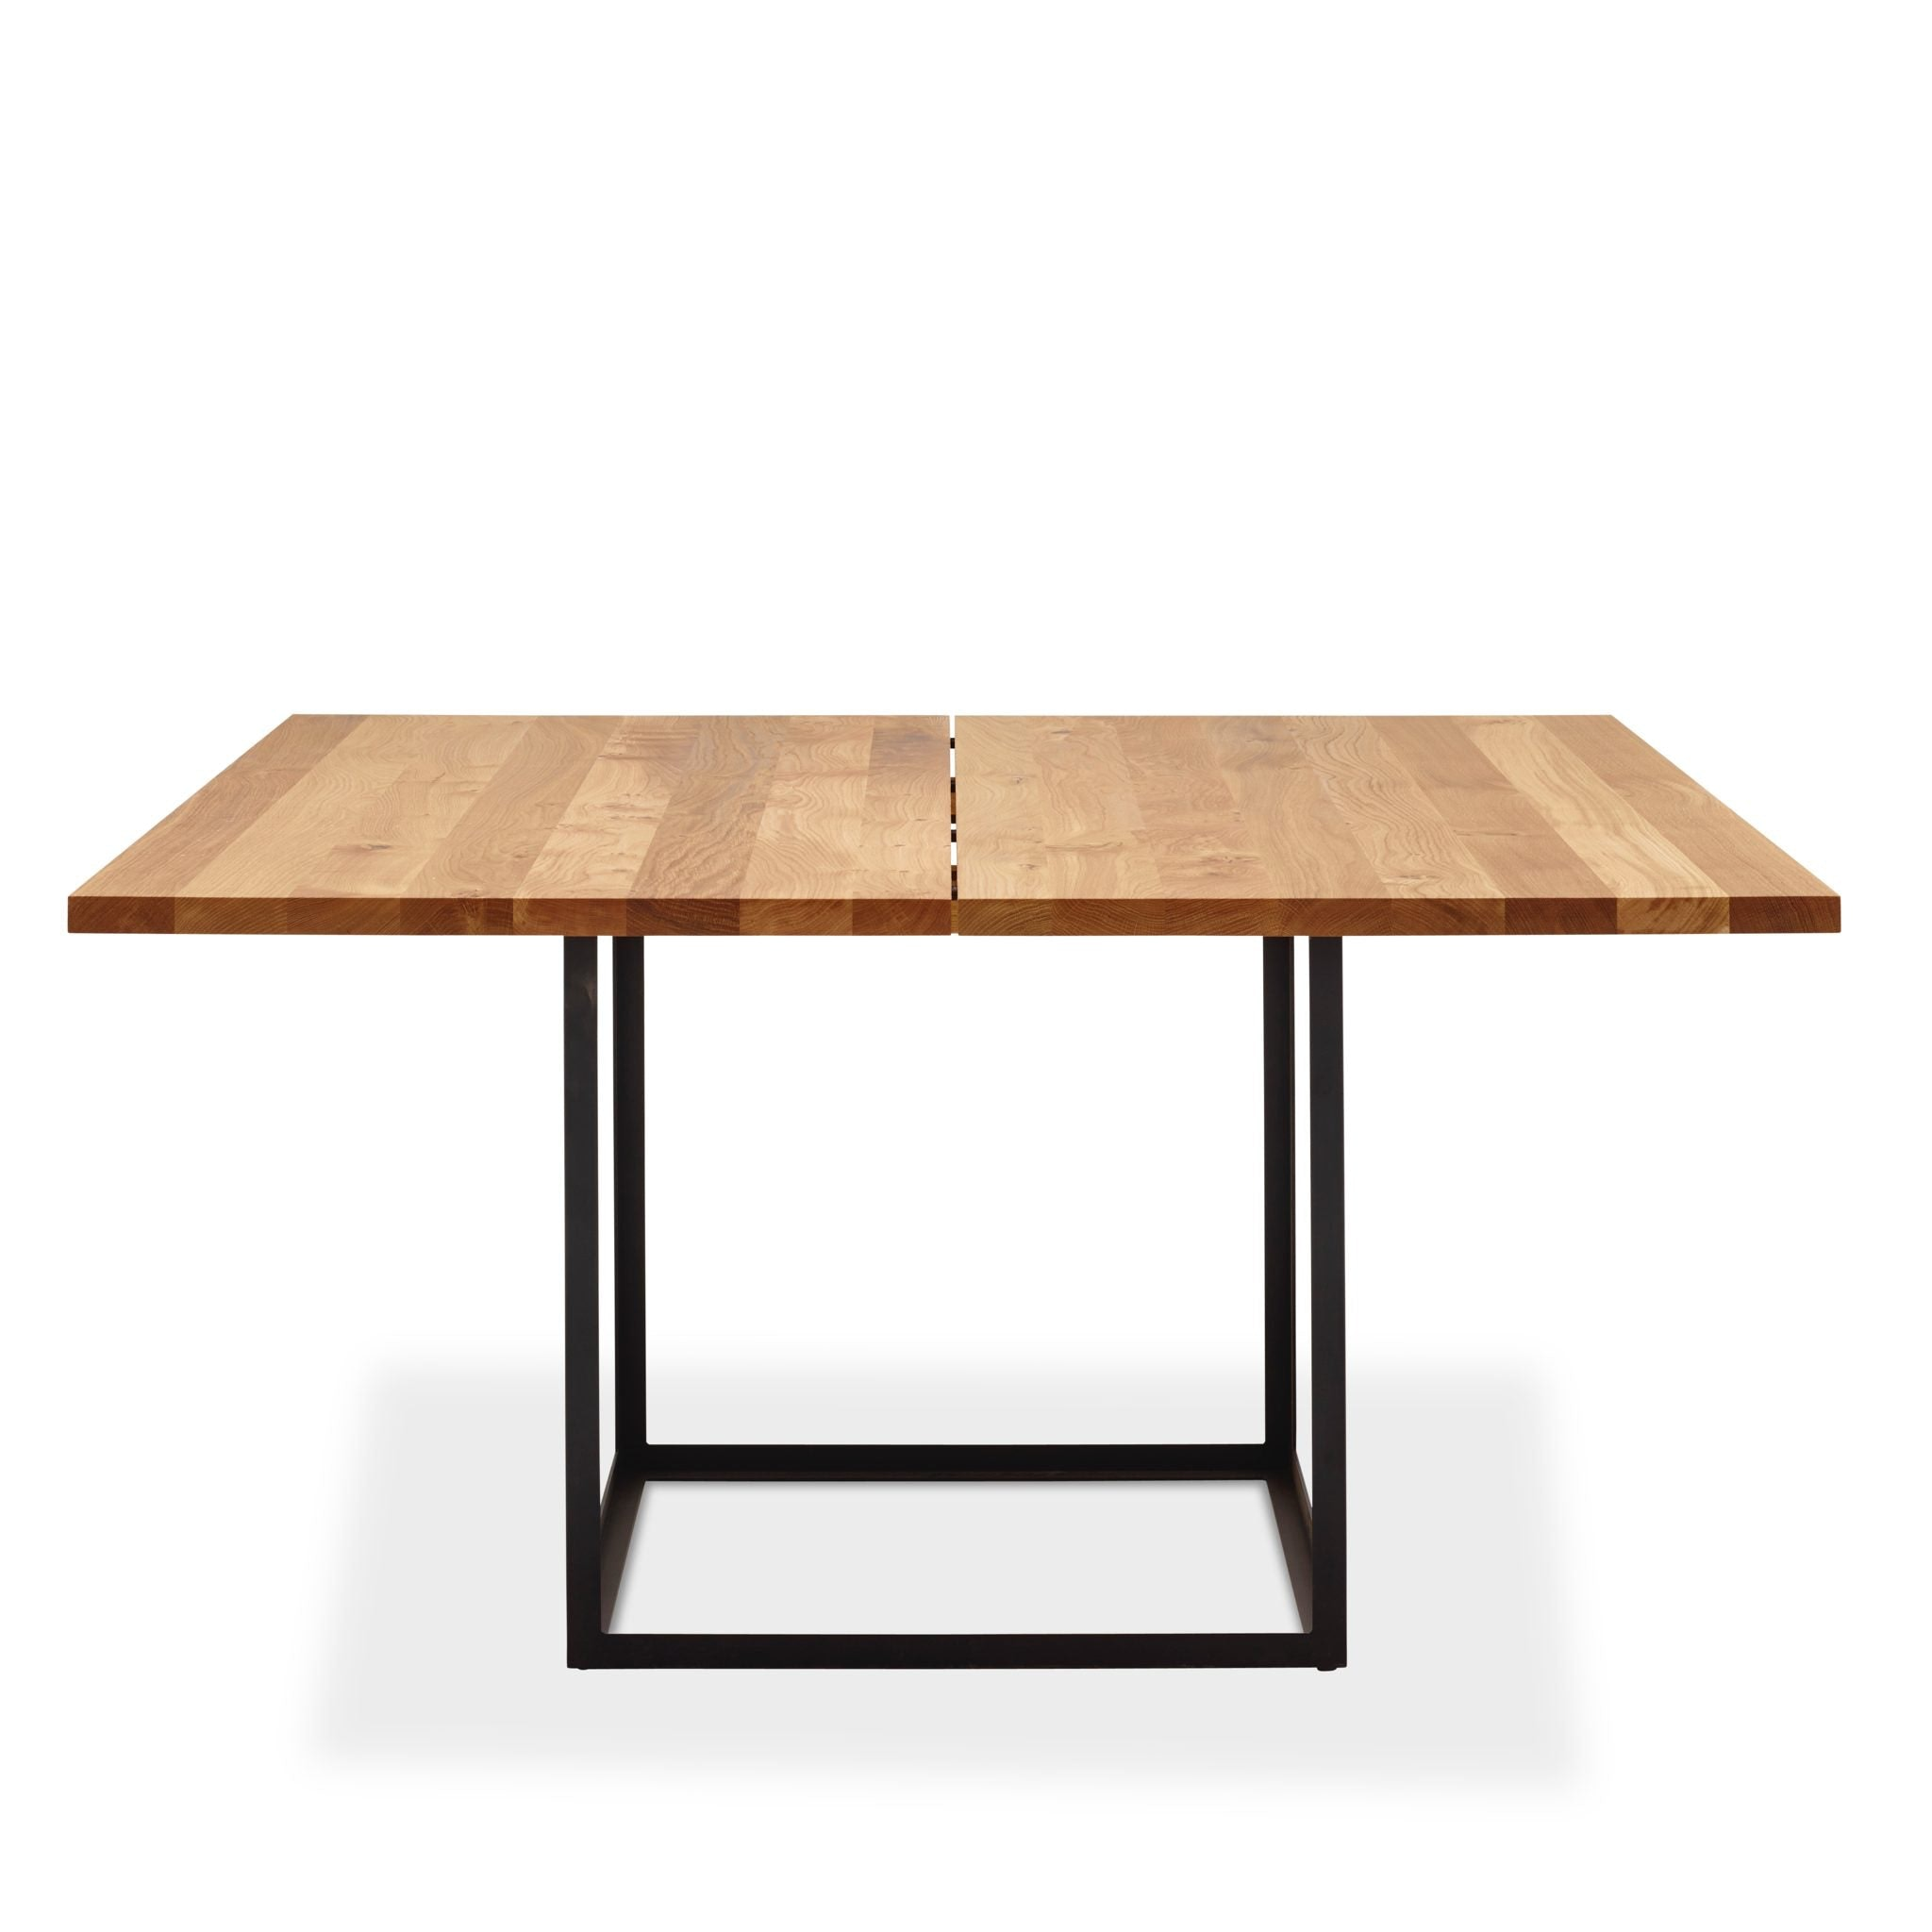 Jewel Table Square by DK3